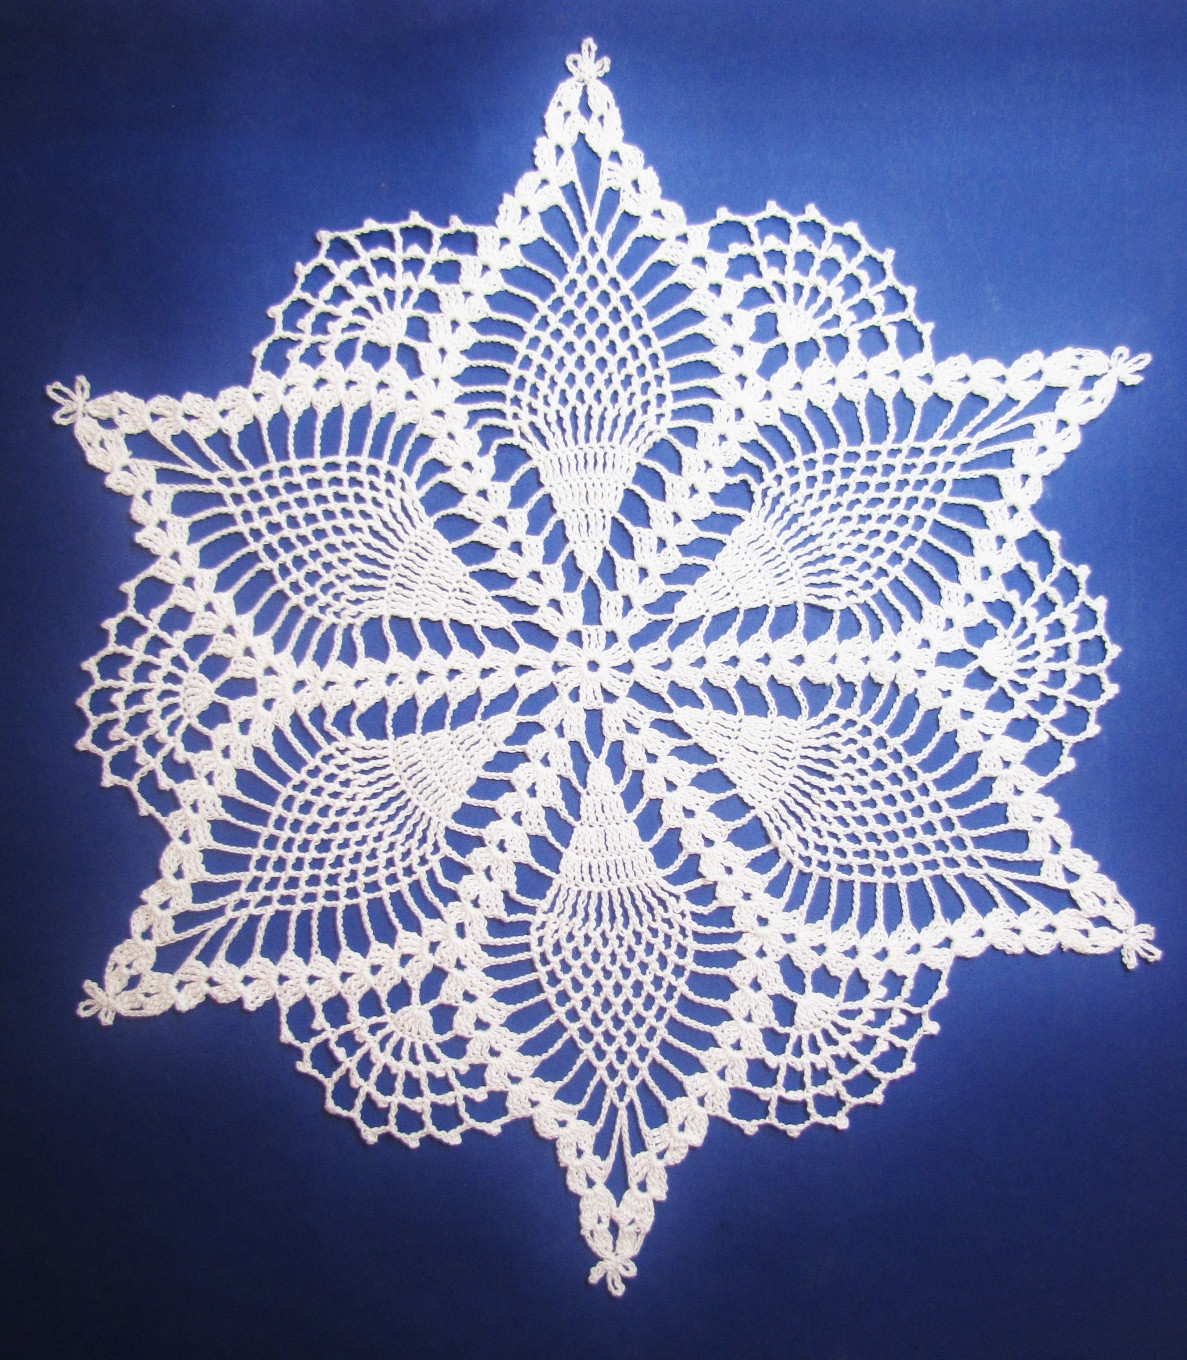 Free Crochet Doily Patterns Best Of Free Thread Crochet Christmas Doily Patterns – Easy Of Charming 46 Pics Free Crochet Doily Patterns